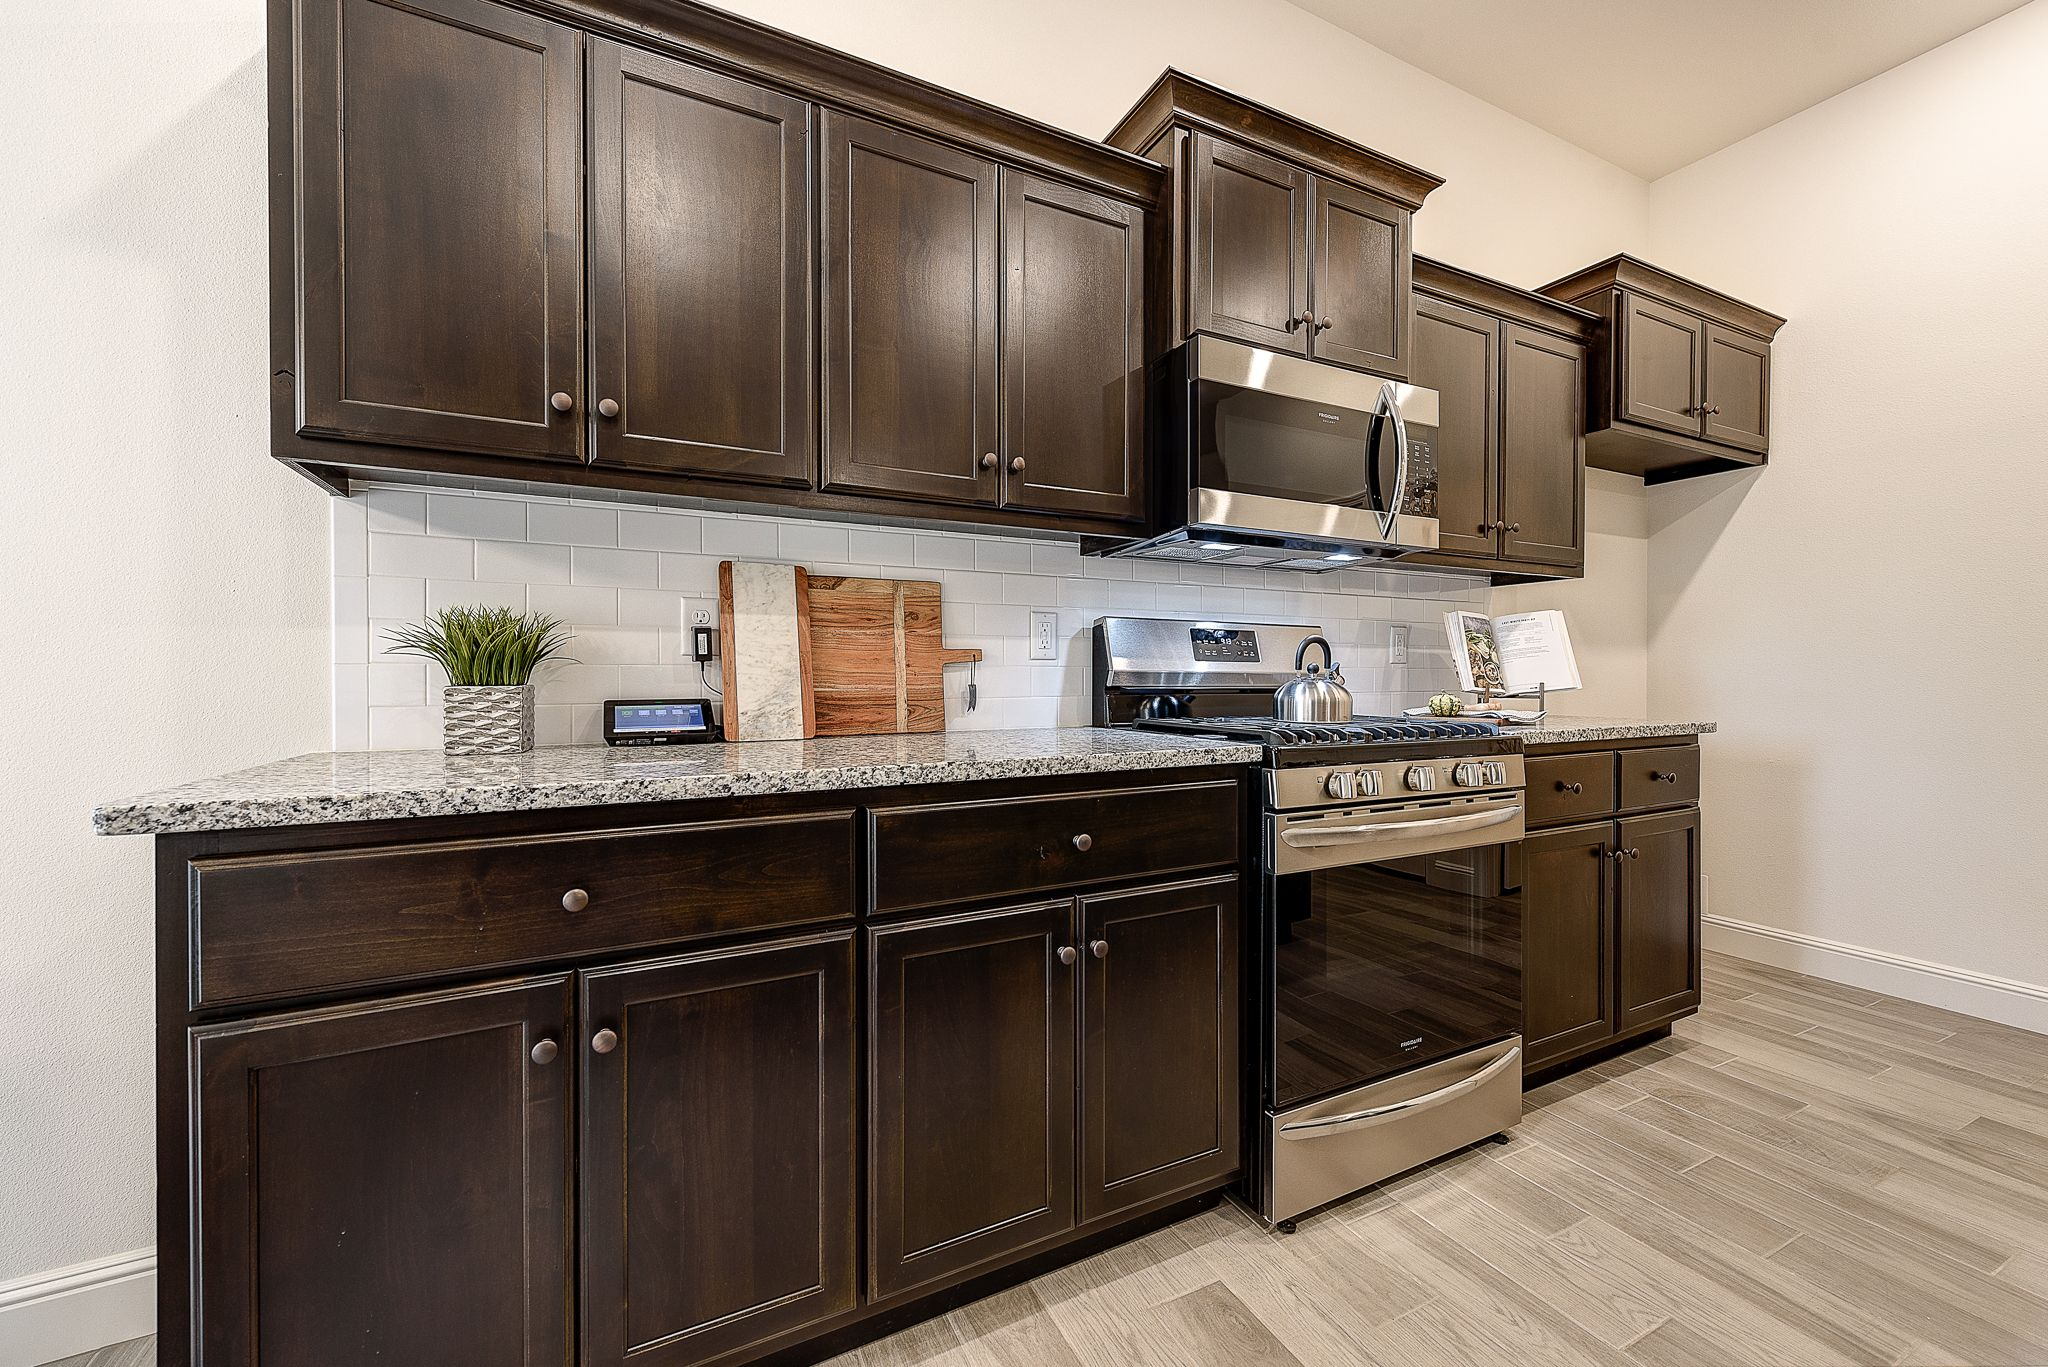 Kitchen featured in the 1650KI Series By Schuber Mitchell Homes in Fayetteville, AR